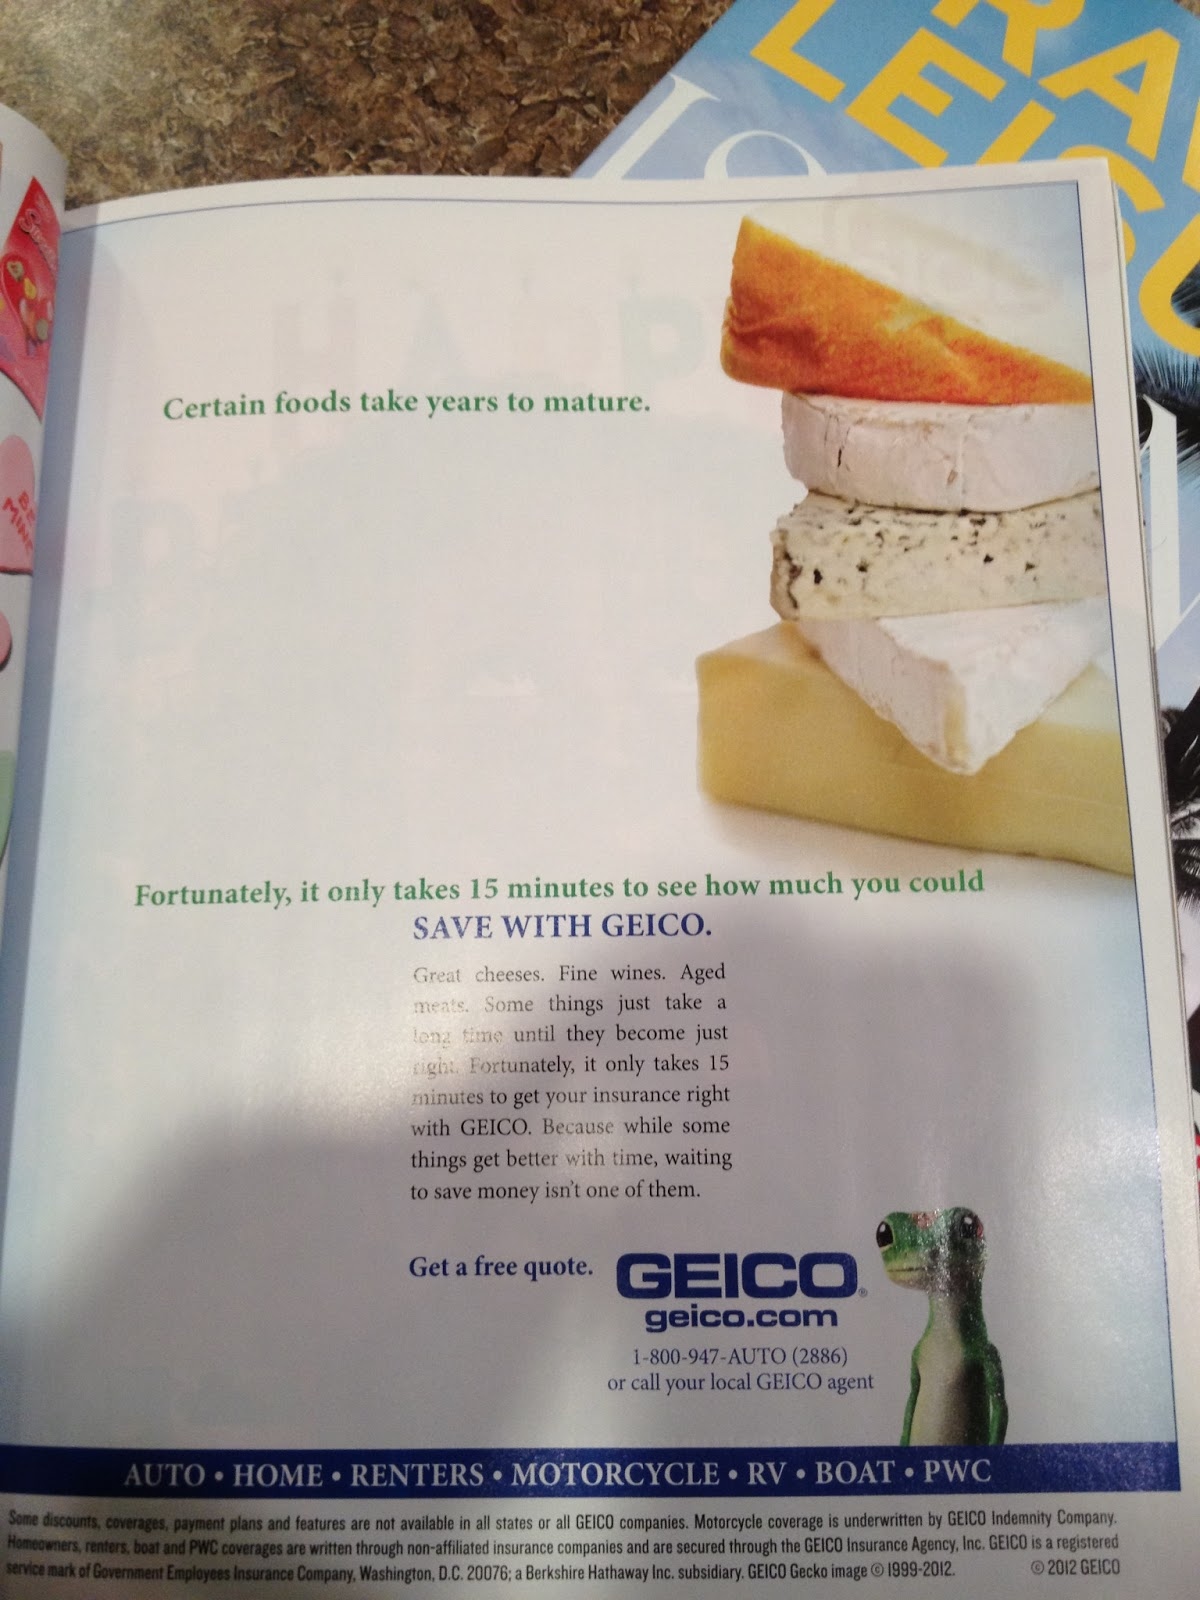 MEDC Media and Culture GEICO Print Ad Sports Illustrated